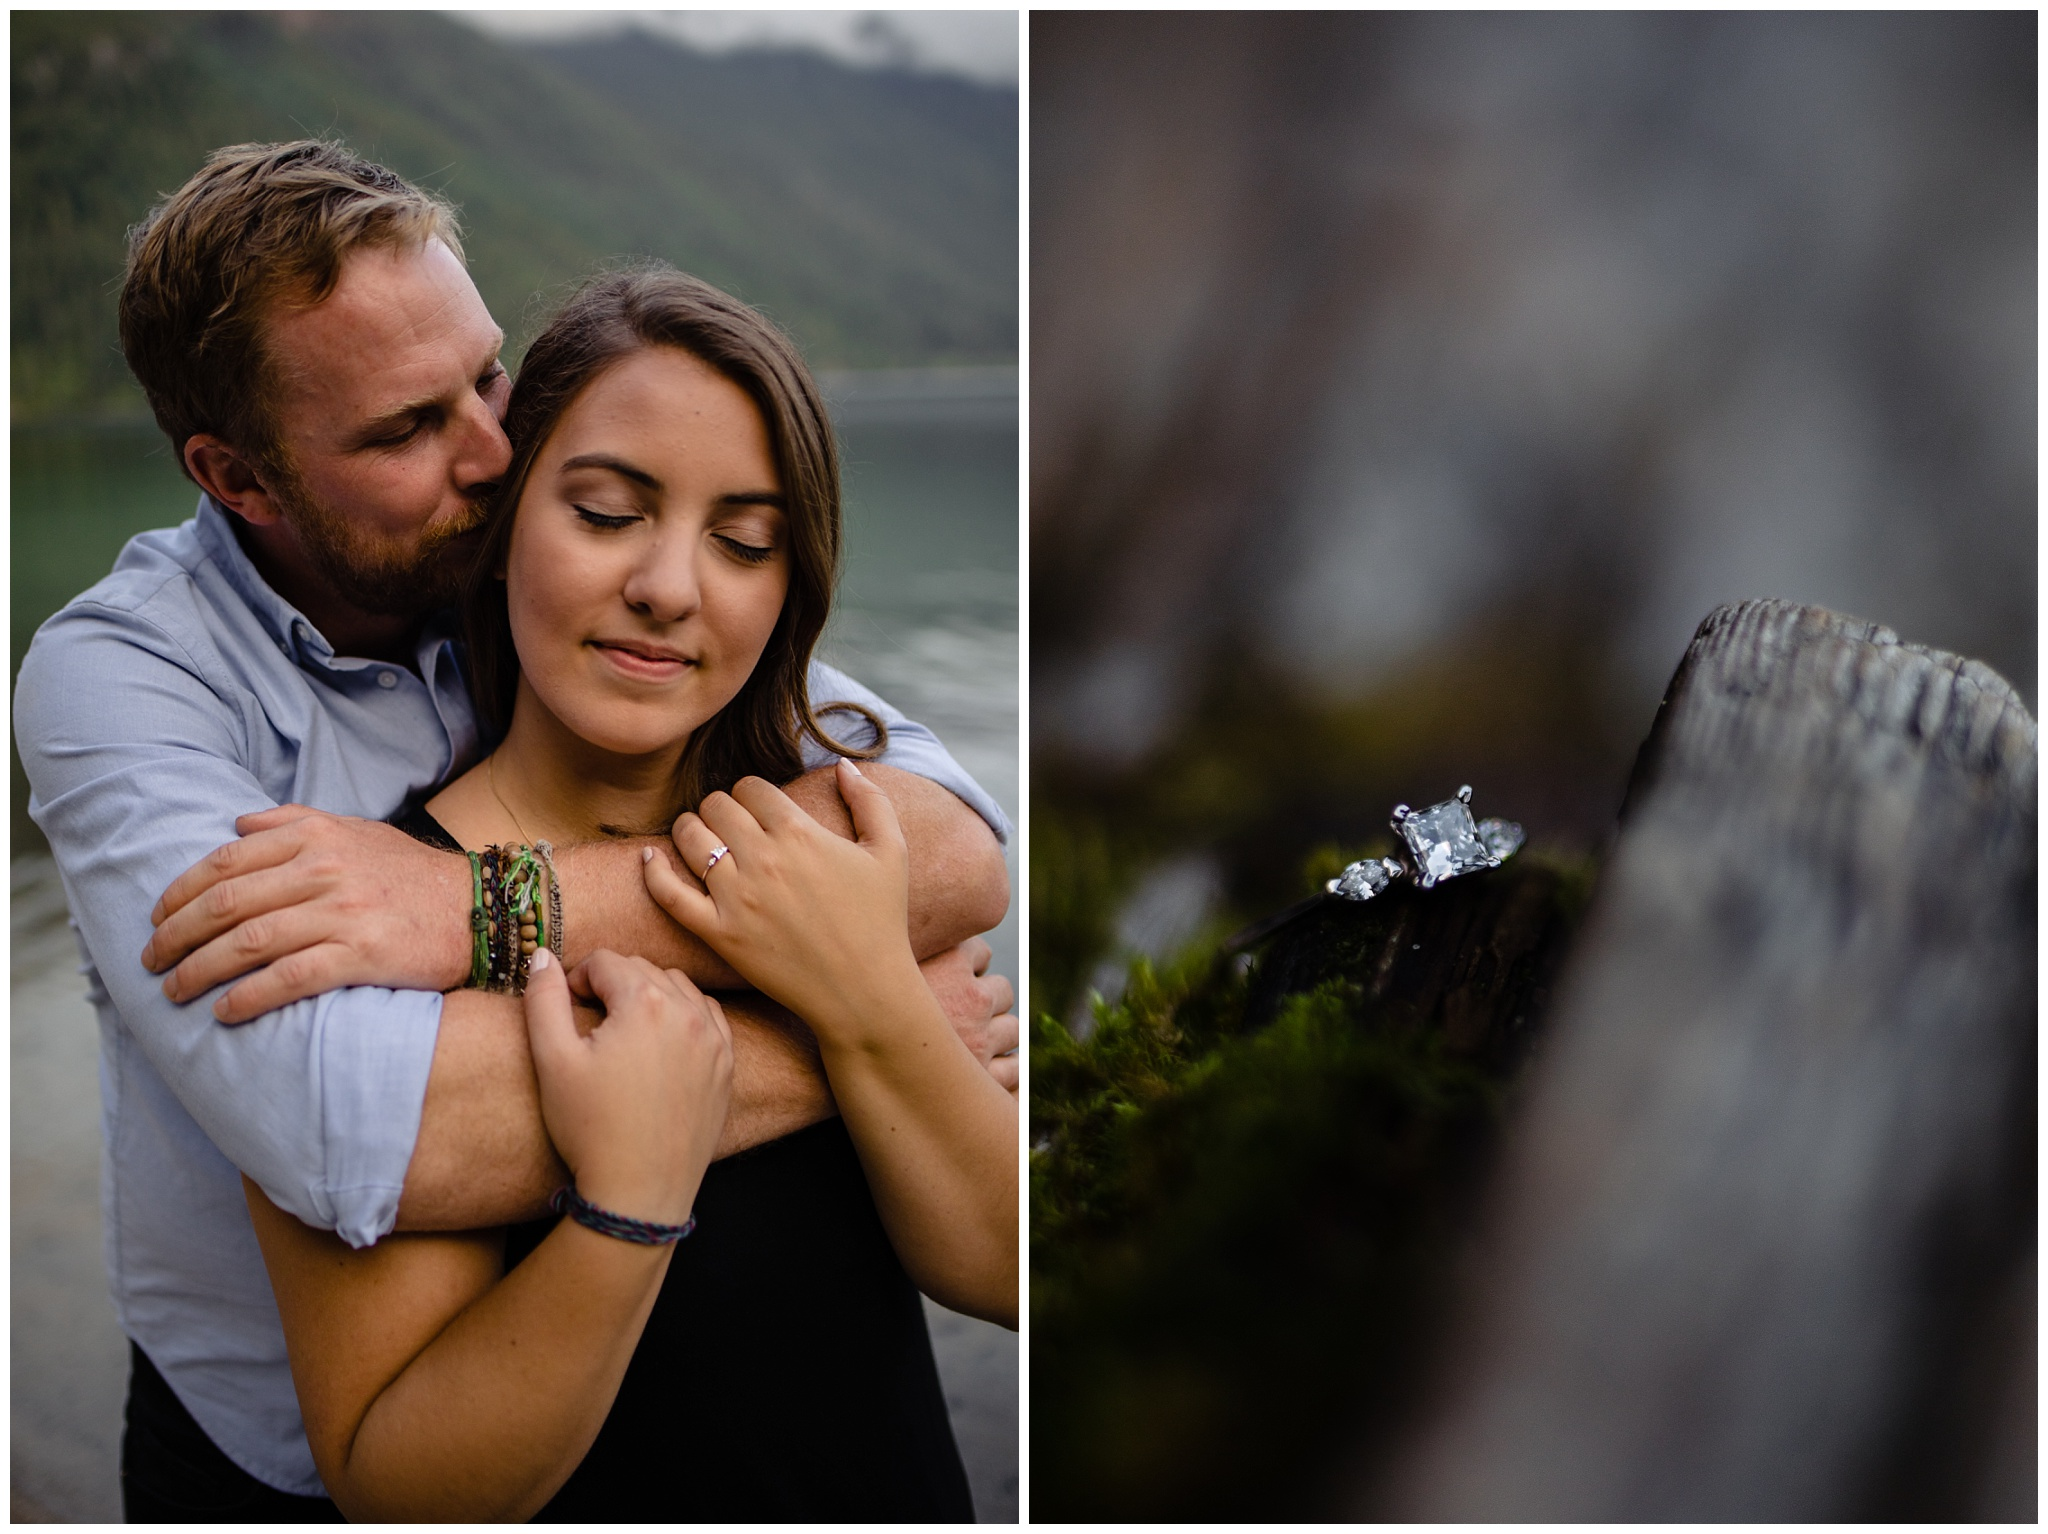 Chilliwack Lake Fall Engagement Photo Inspiration Poses Chilliwack Engagement Photographer_0021.jpg